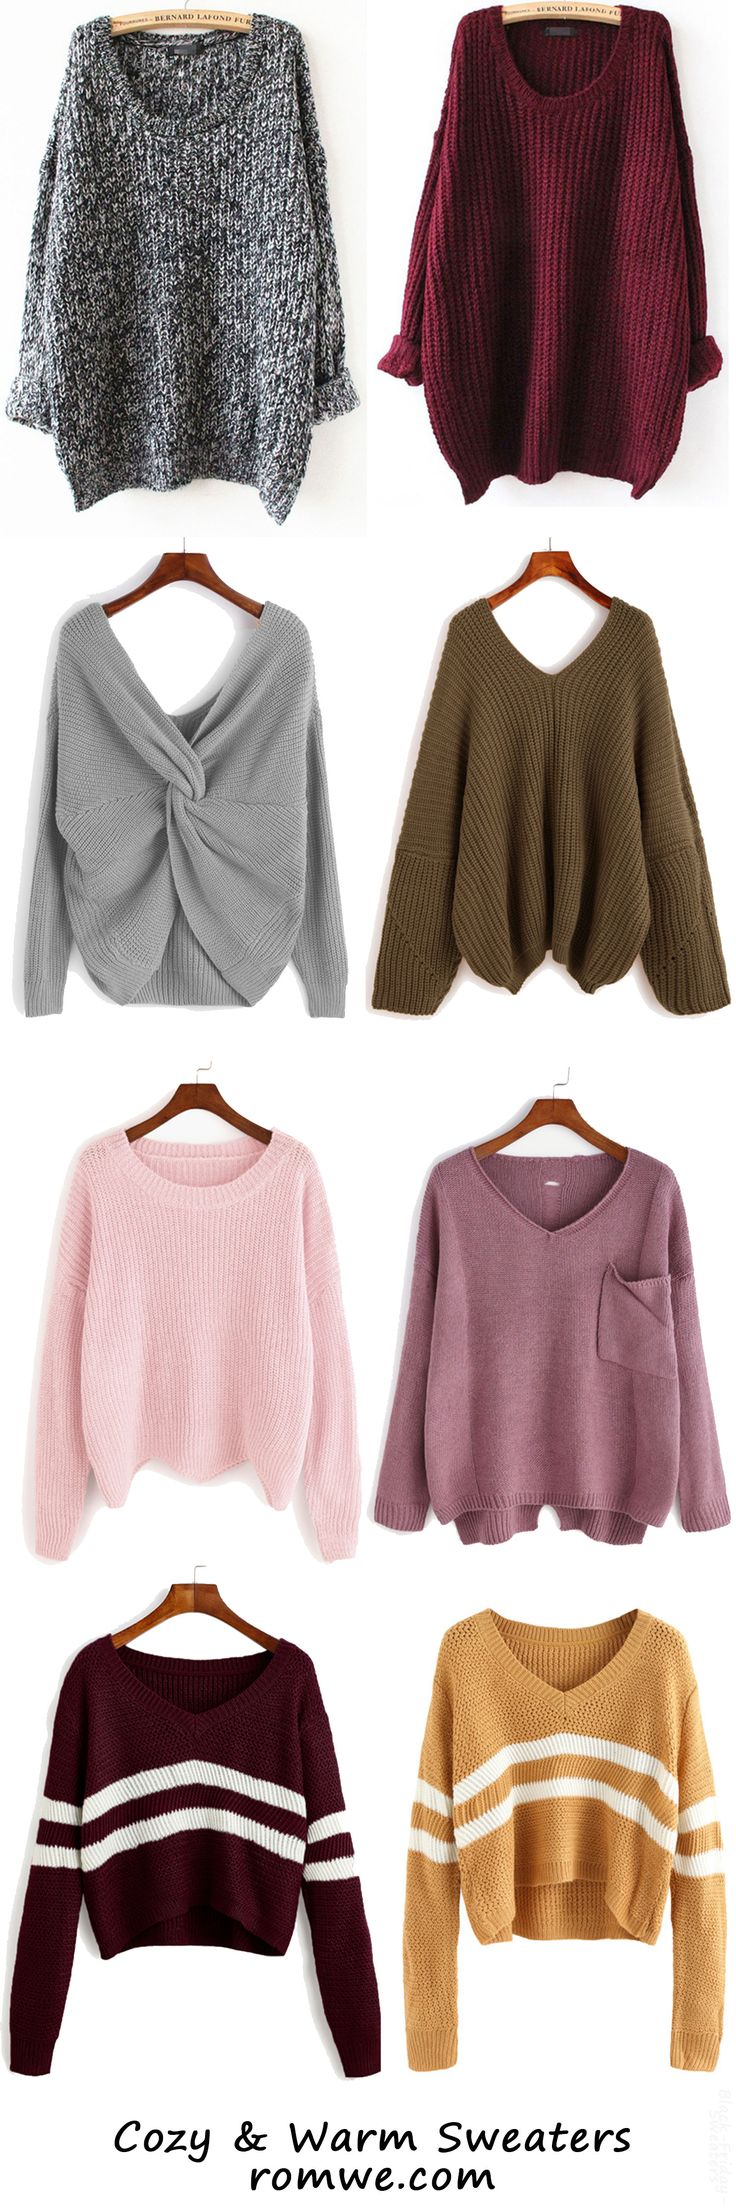 Black Friday 2016 - Sweaters from romwe.com